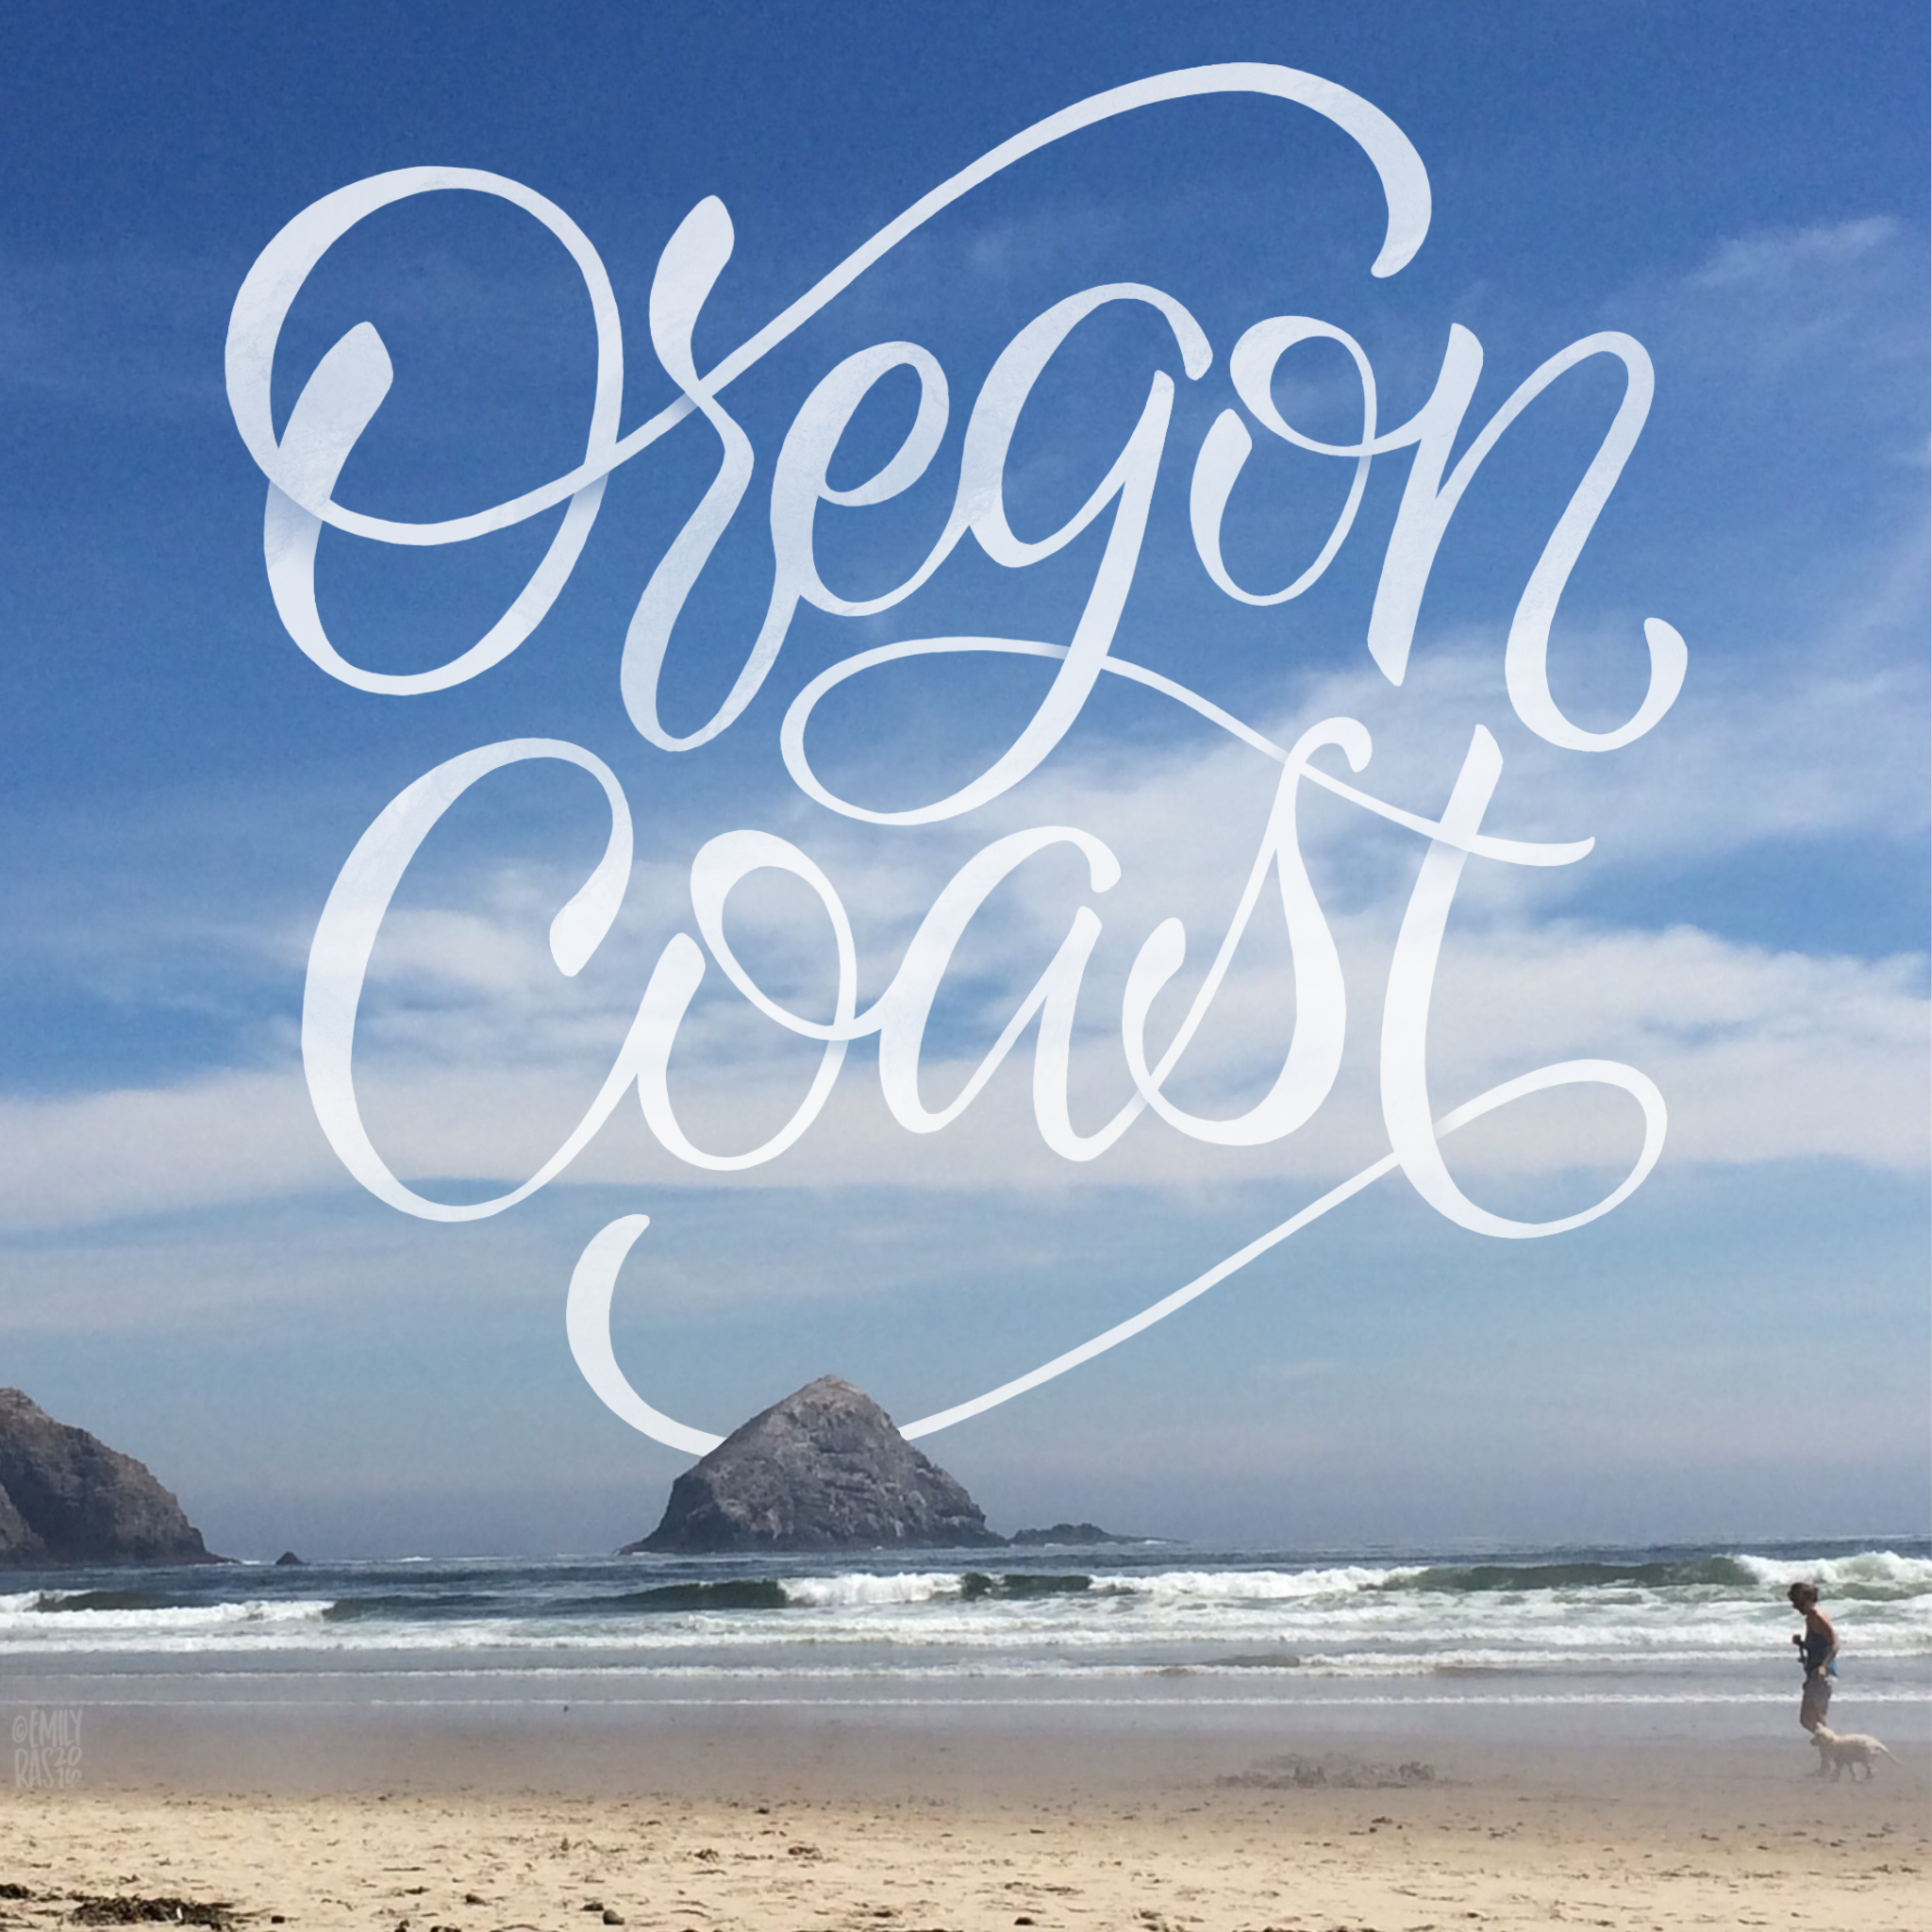 Hand lettering over photography of the Oregon Coast on a sunny day